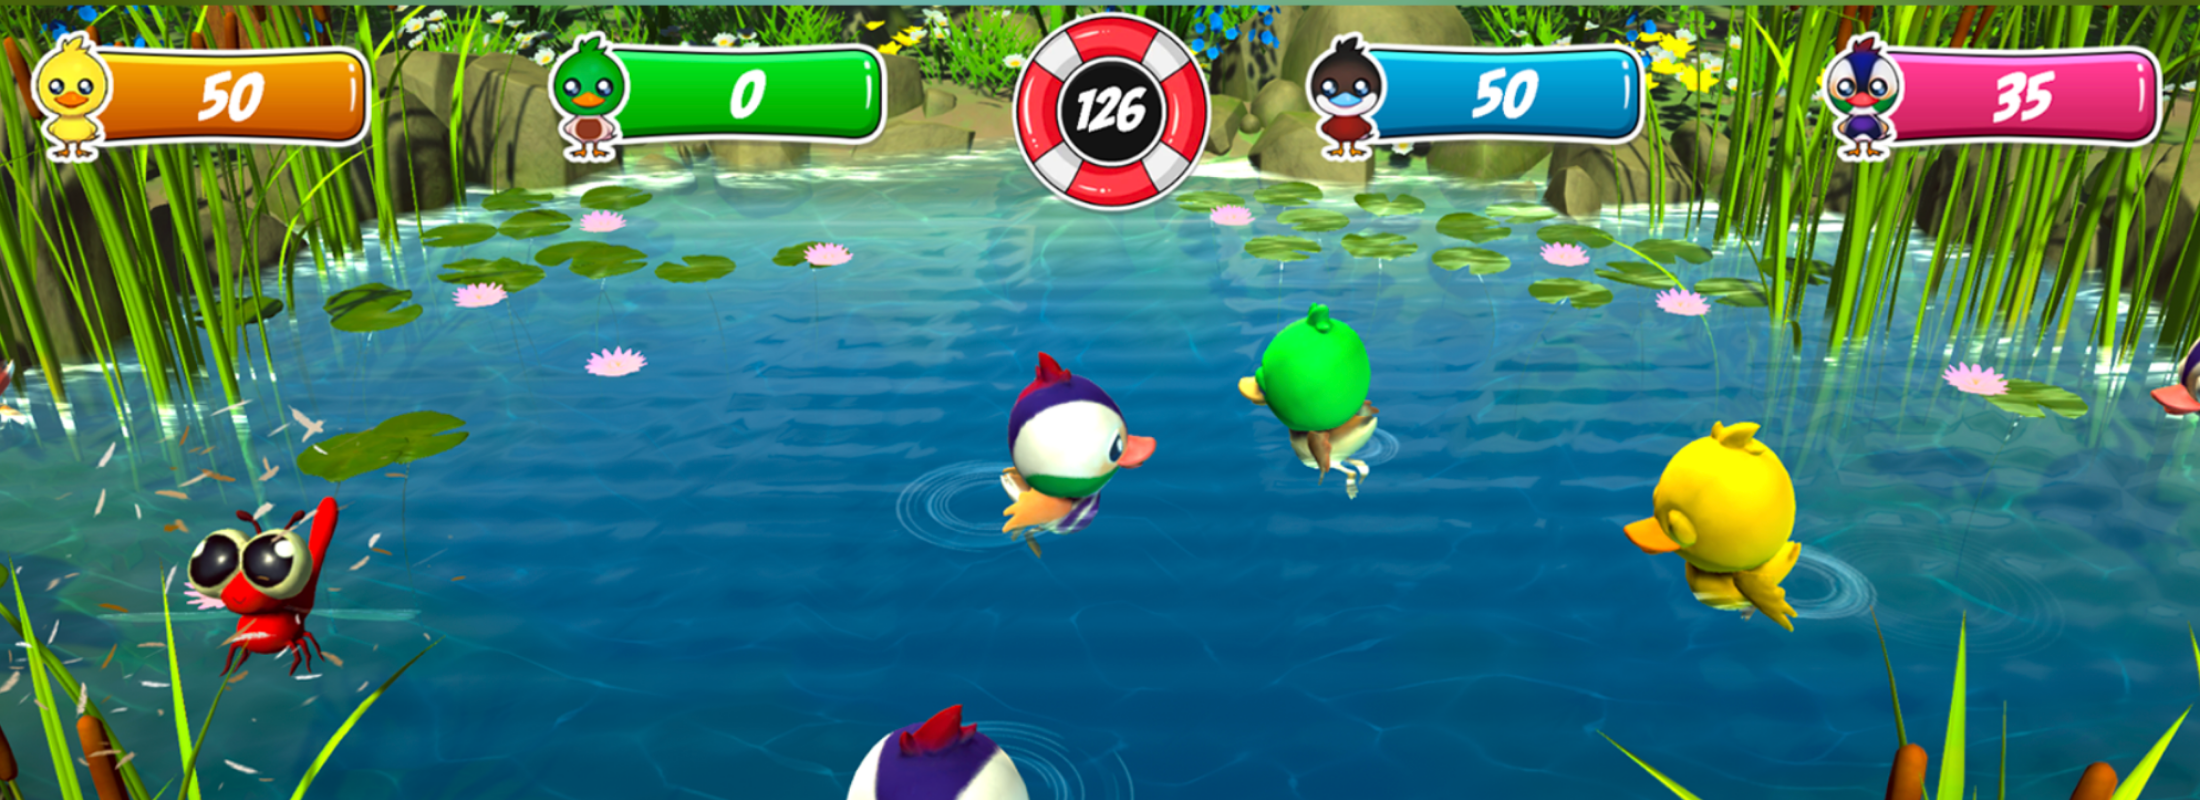 Gameplay picture Duck panic 1